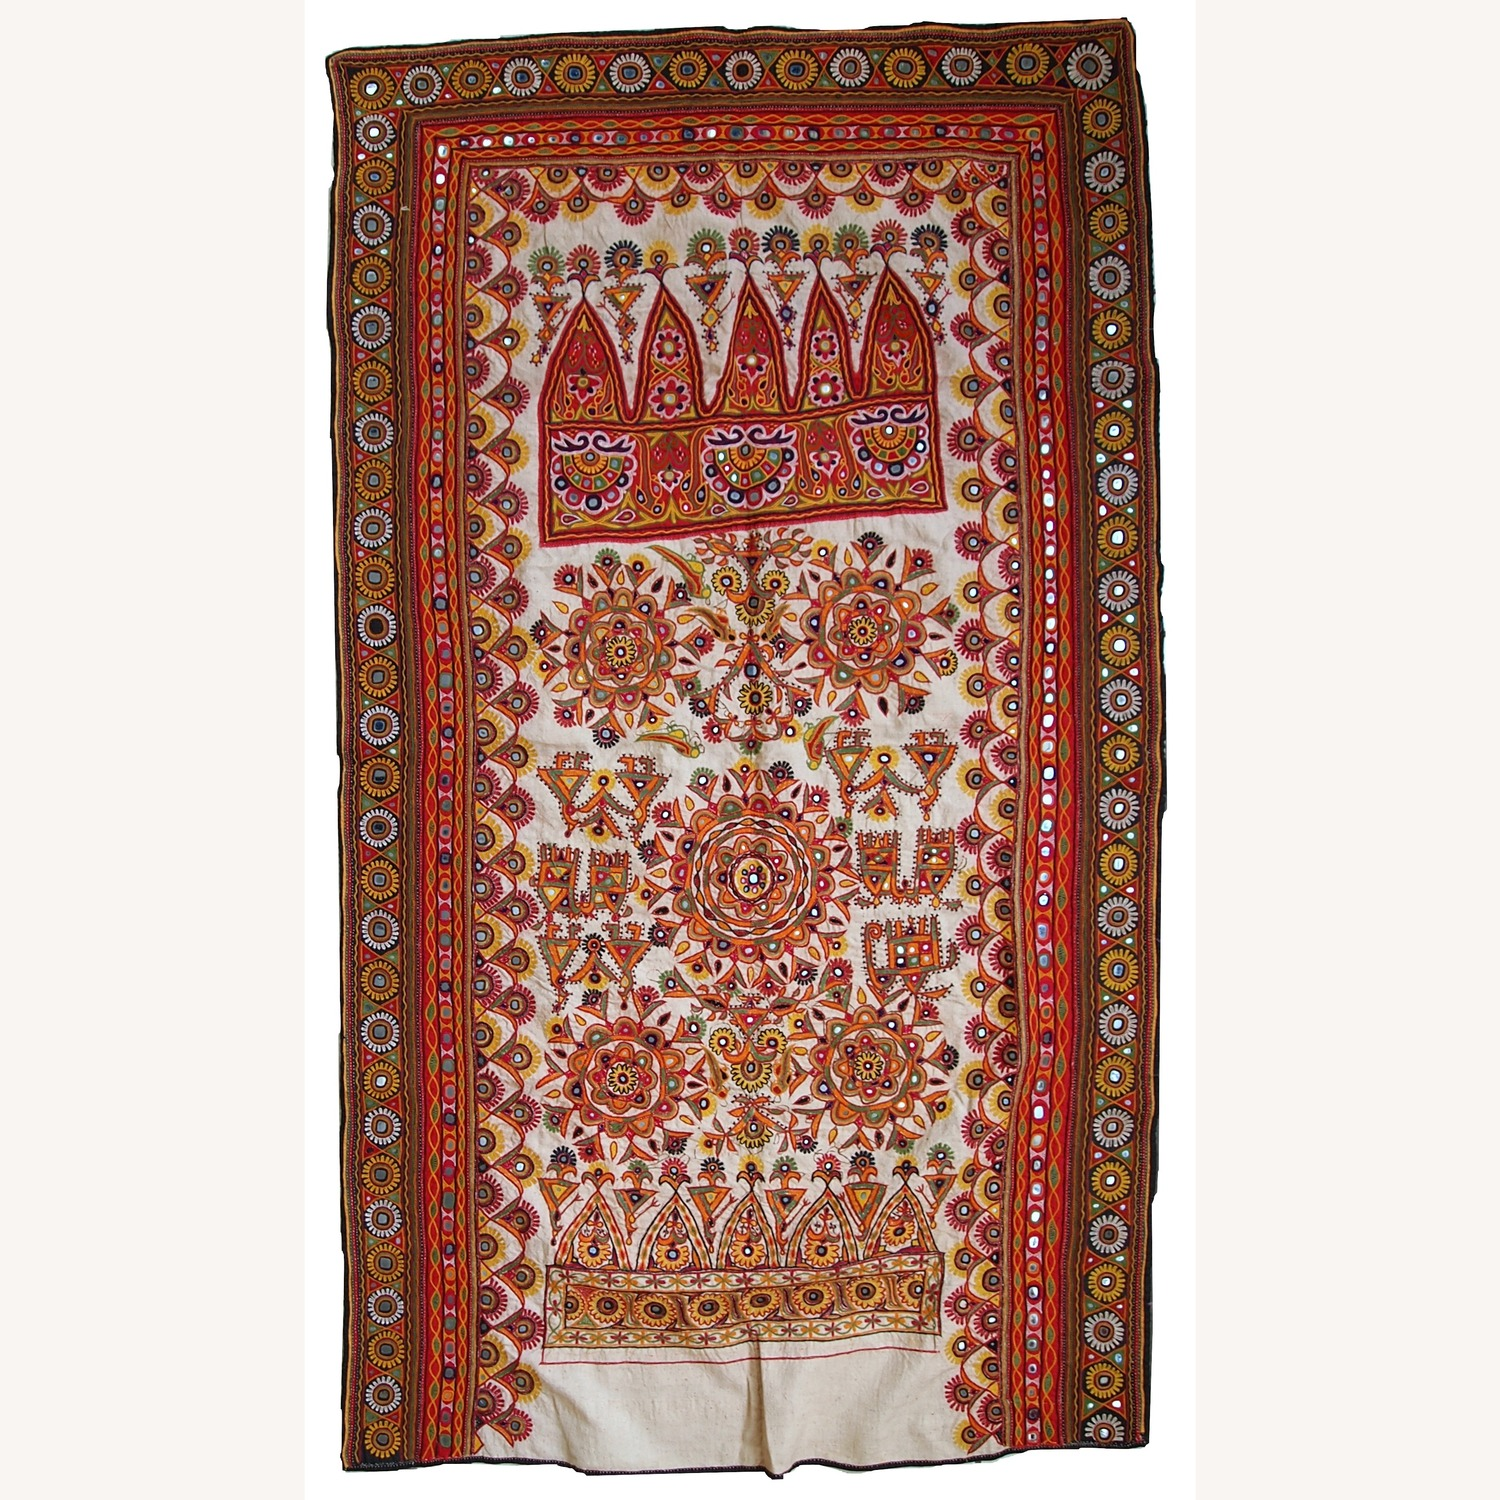 Handmade Indian Wall Hanging Embroidered Tapestry - image-1